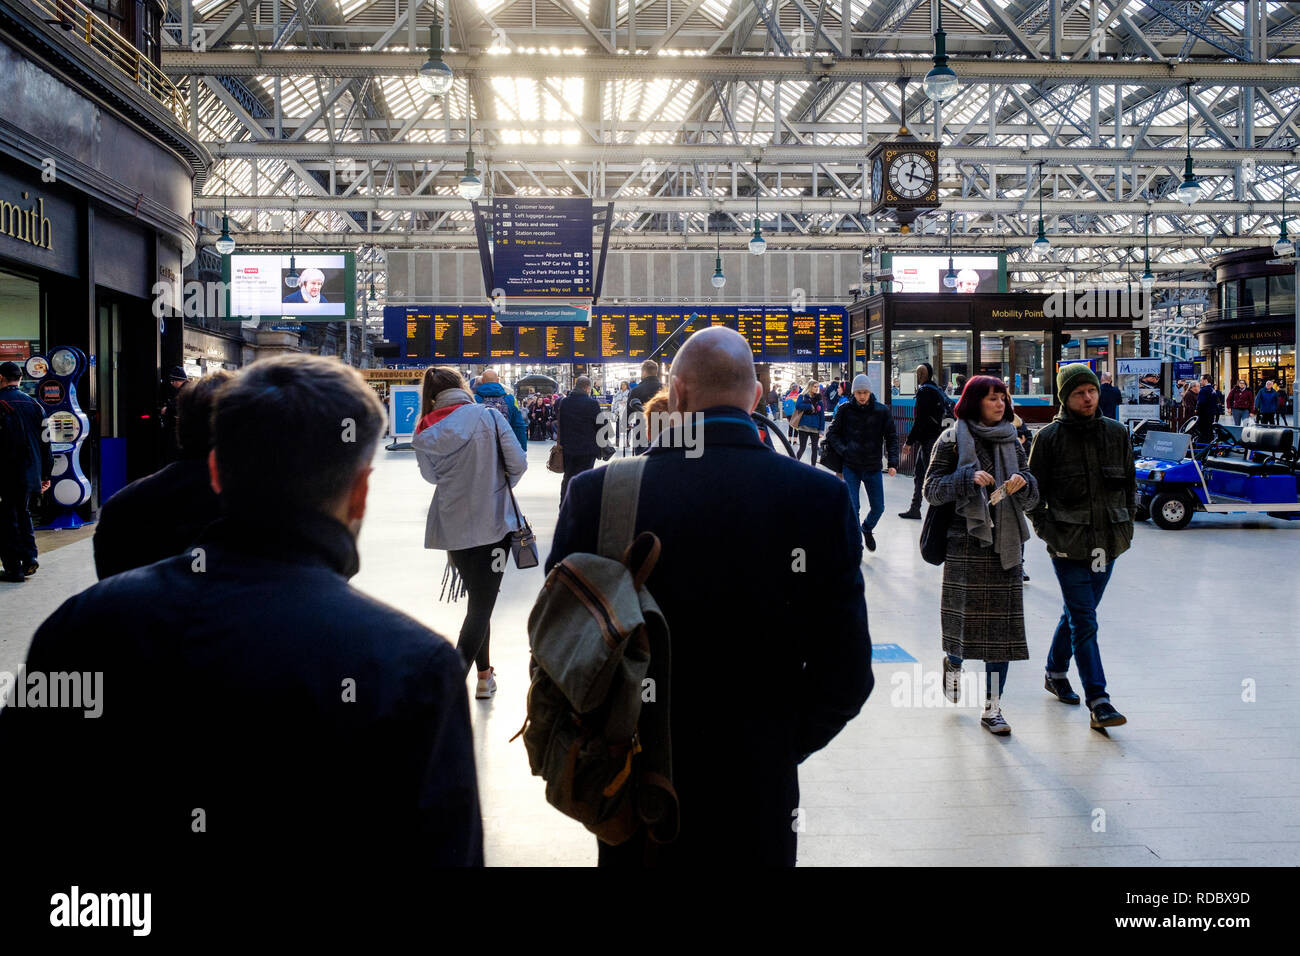 Passengers on the concourse at Central Station, Glasgow, Scotland - Stock Image